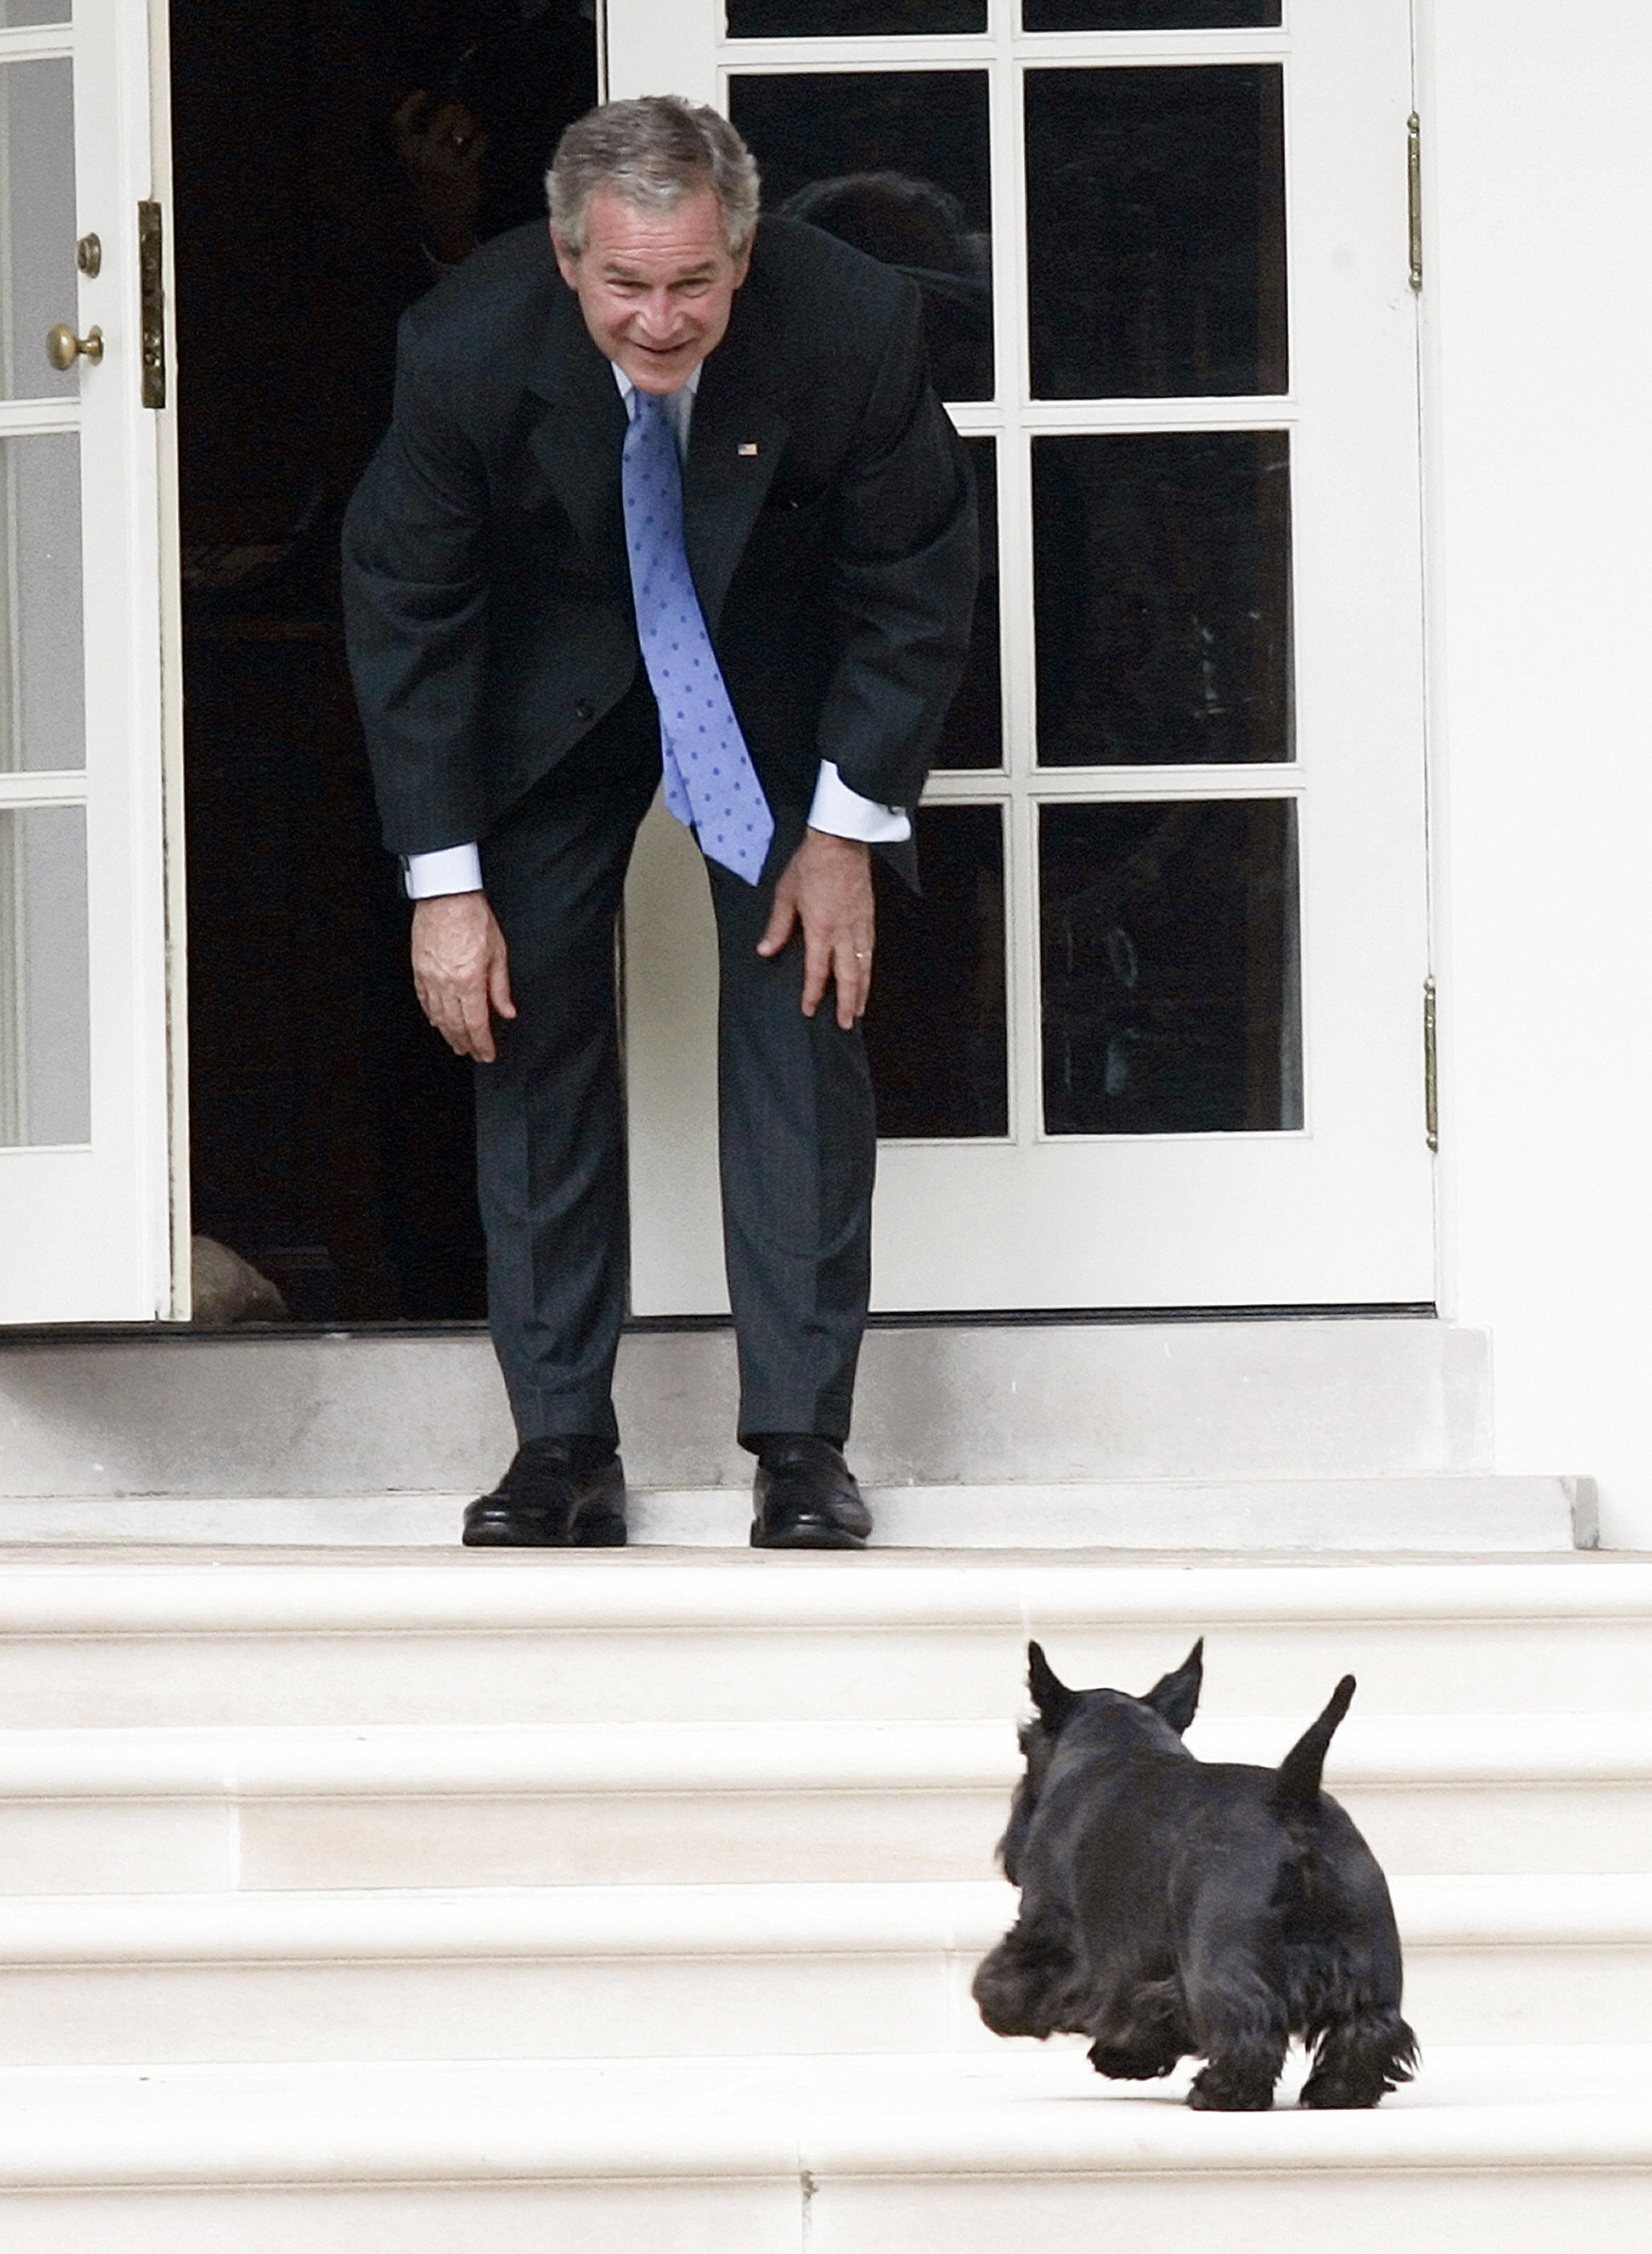 George W. Bush calls for his dog Barney as he stands on the West Wing Colonnade at the White House on Sept. 28, 2007.